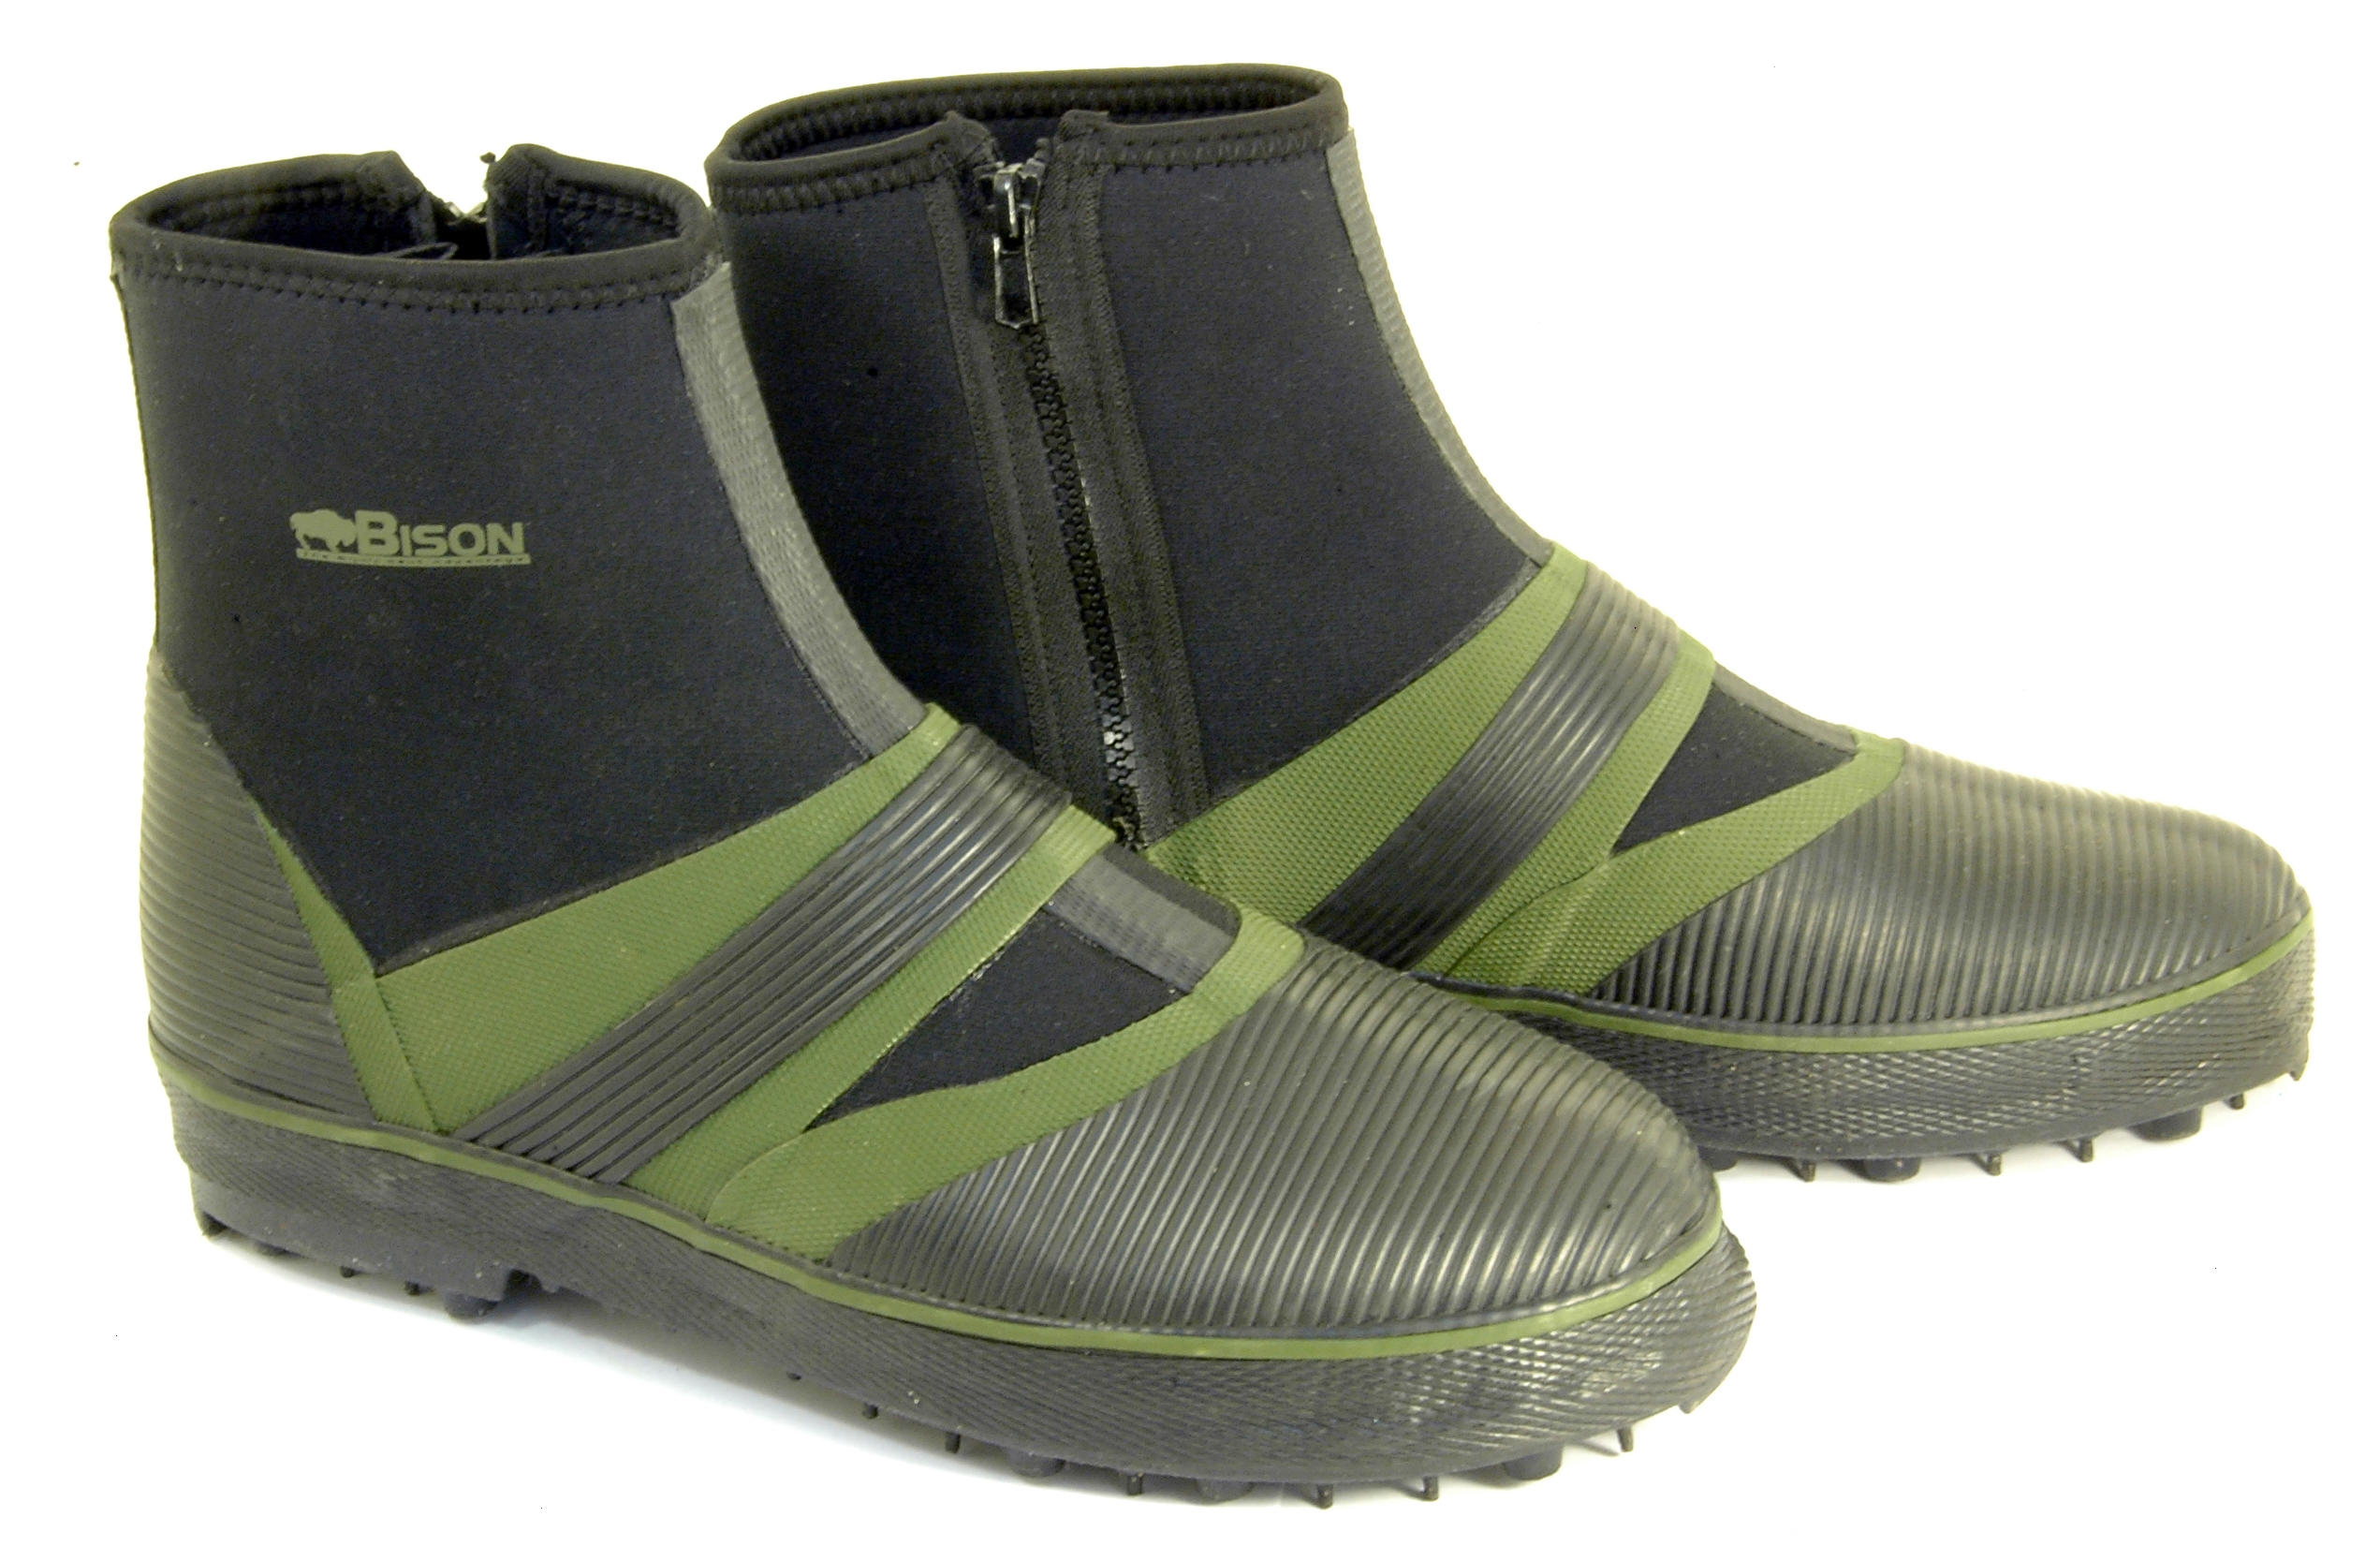 BISON-BEARCLAW-STUDDED-WADING-SHORE-FIELD-BOOTS-SZ-5-13